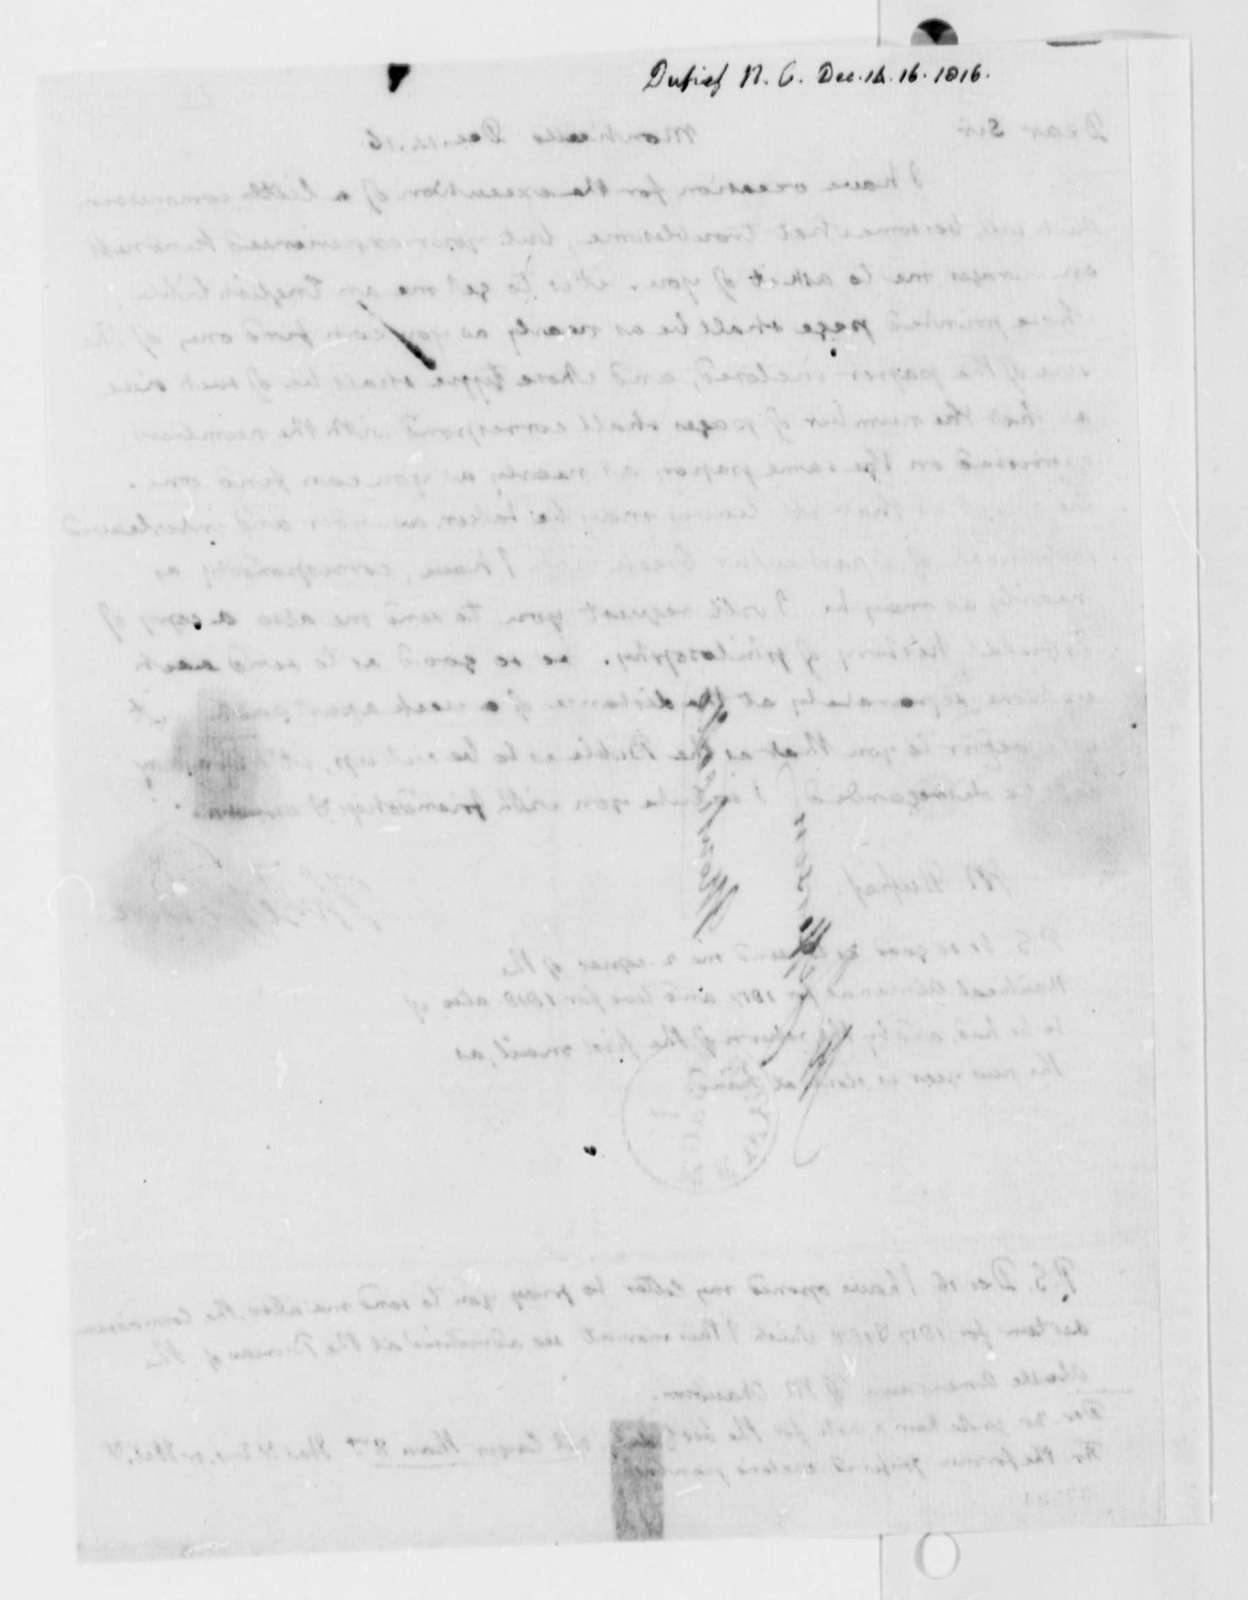 Thomas Jefferson to Nicholas Gouin Dufief, December 14, 1816